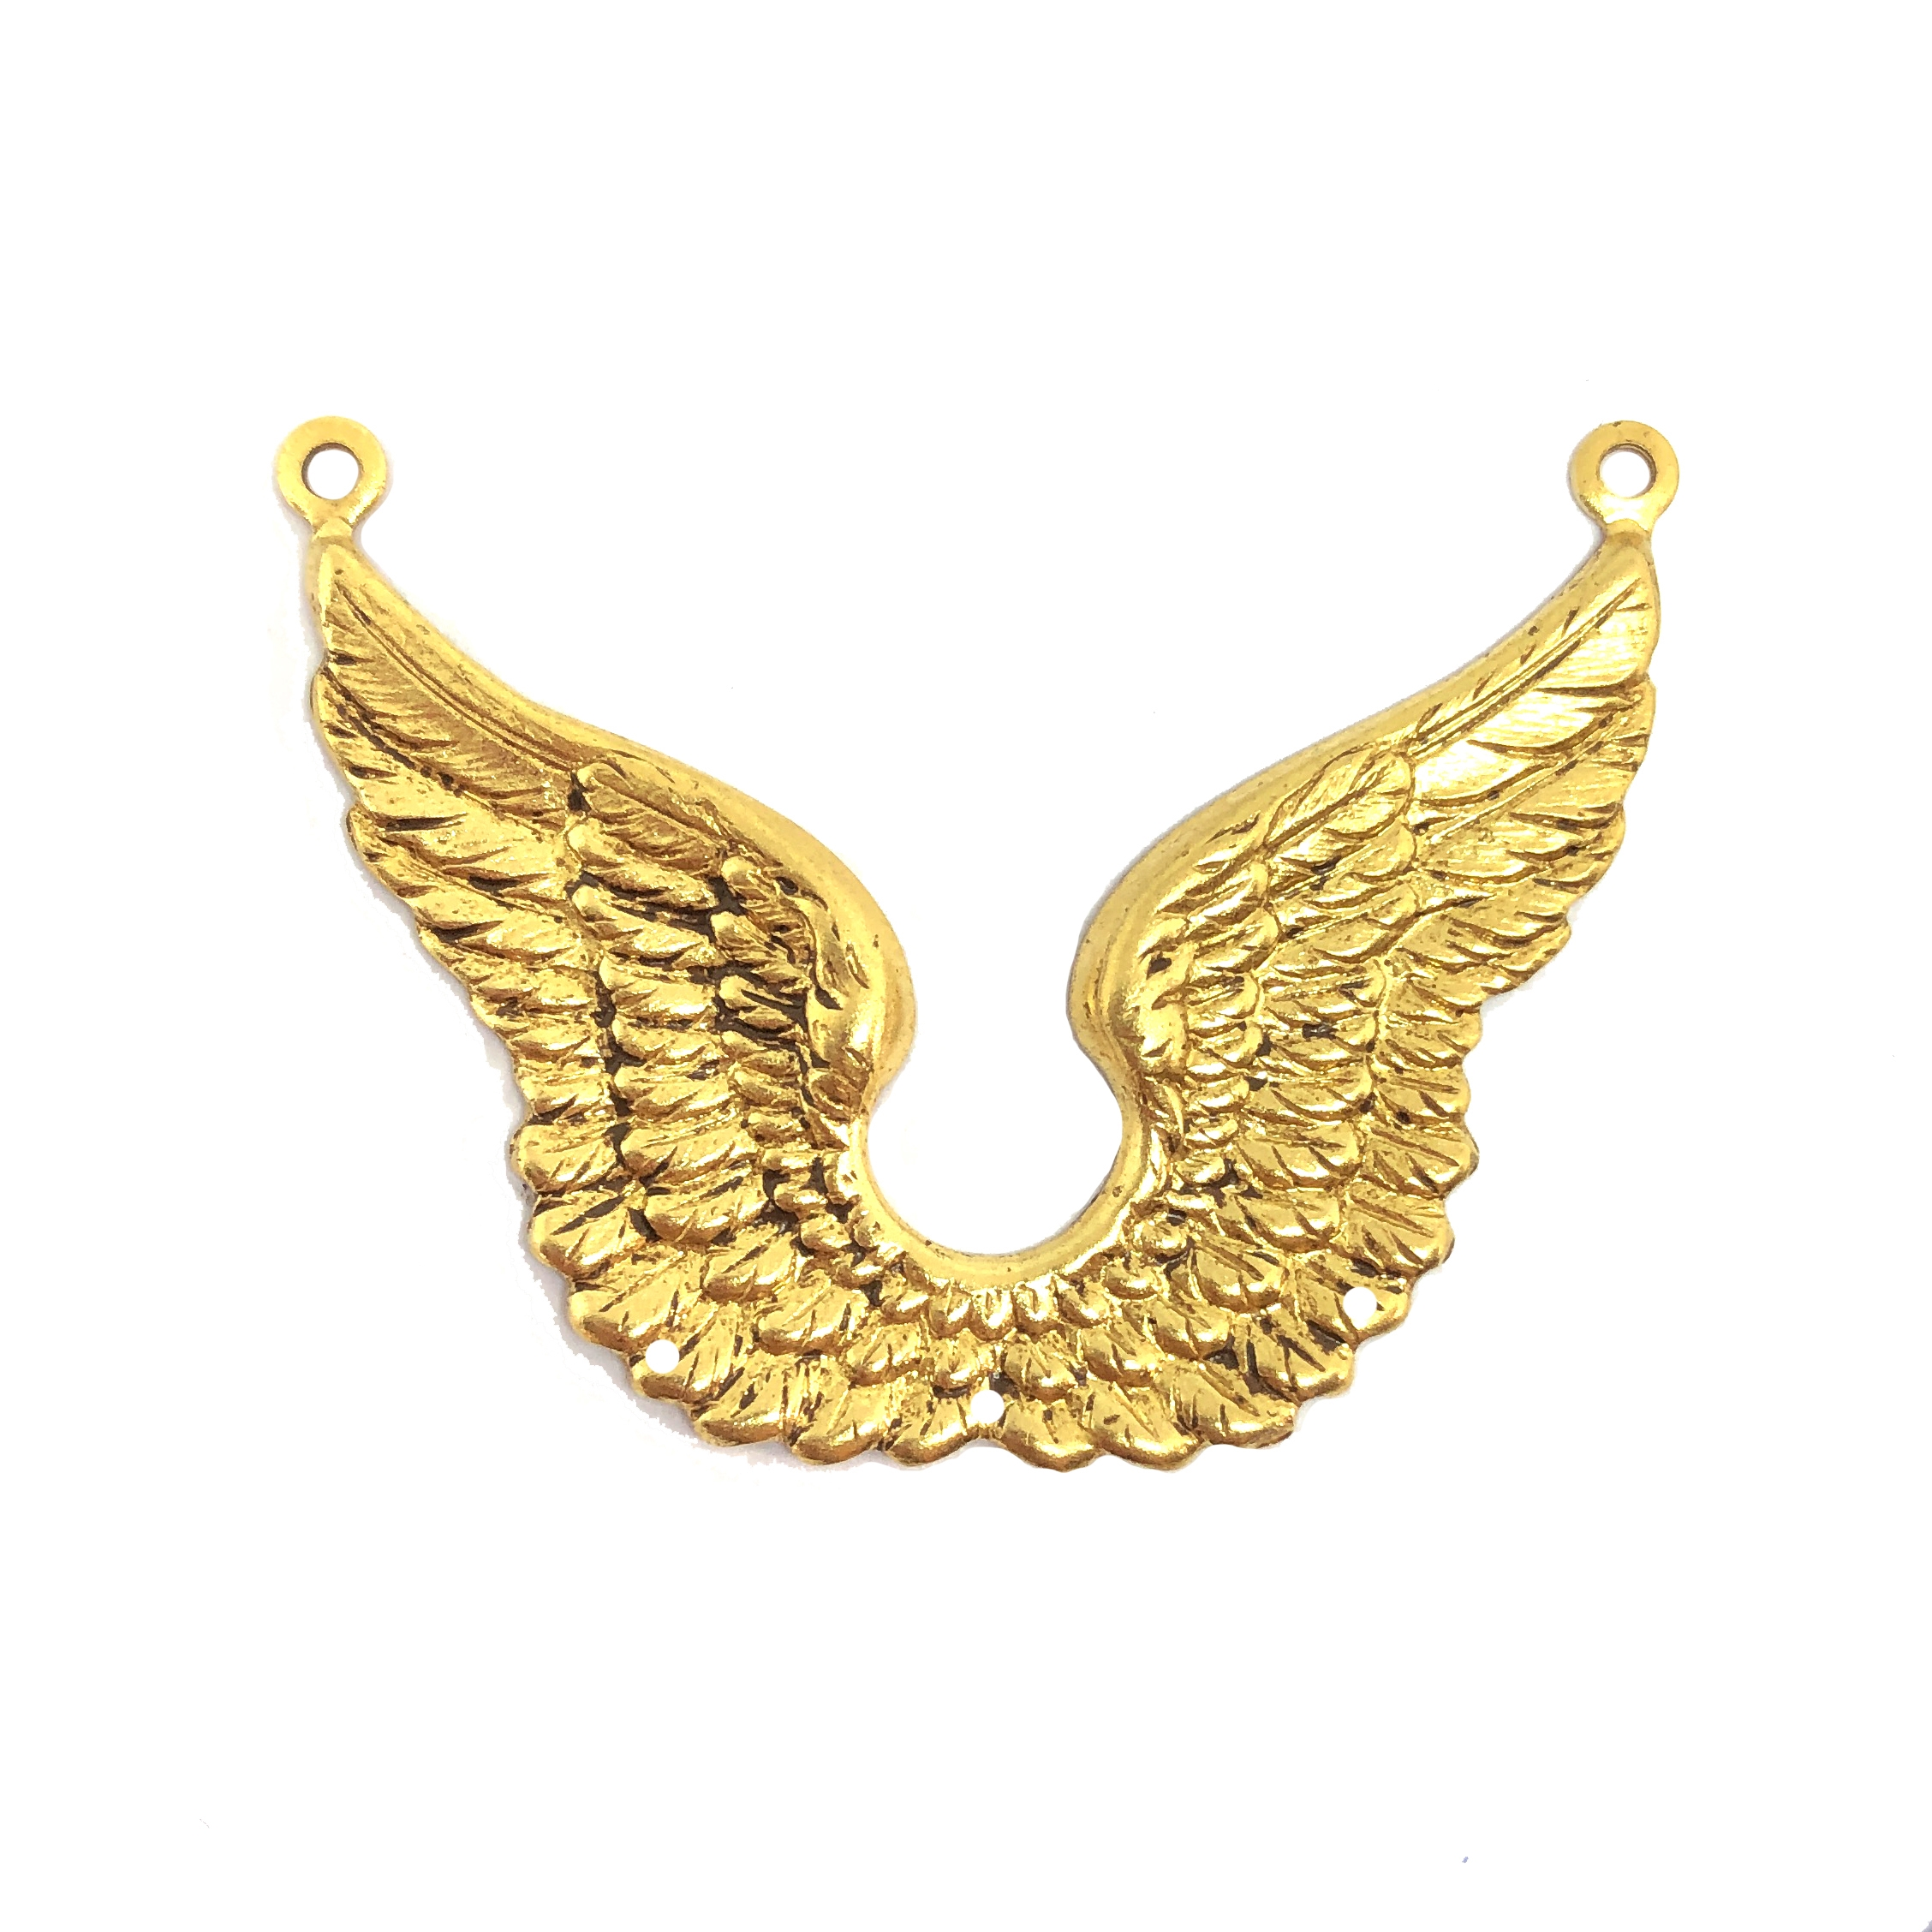 brass wings, wing connectors, plated brass, 09742, double wings, classic gold, vintage jewelry supplies, brass jewelry parts, jewelry making supplies, US made, nickel free, B'sue Boutiques, wings